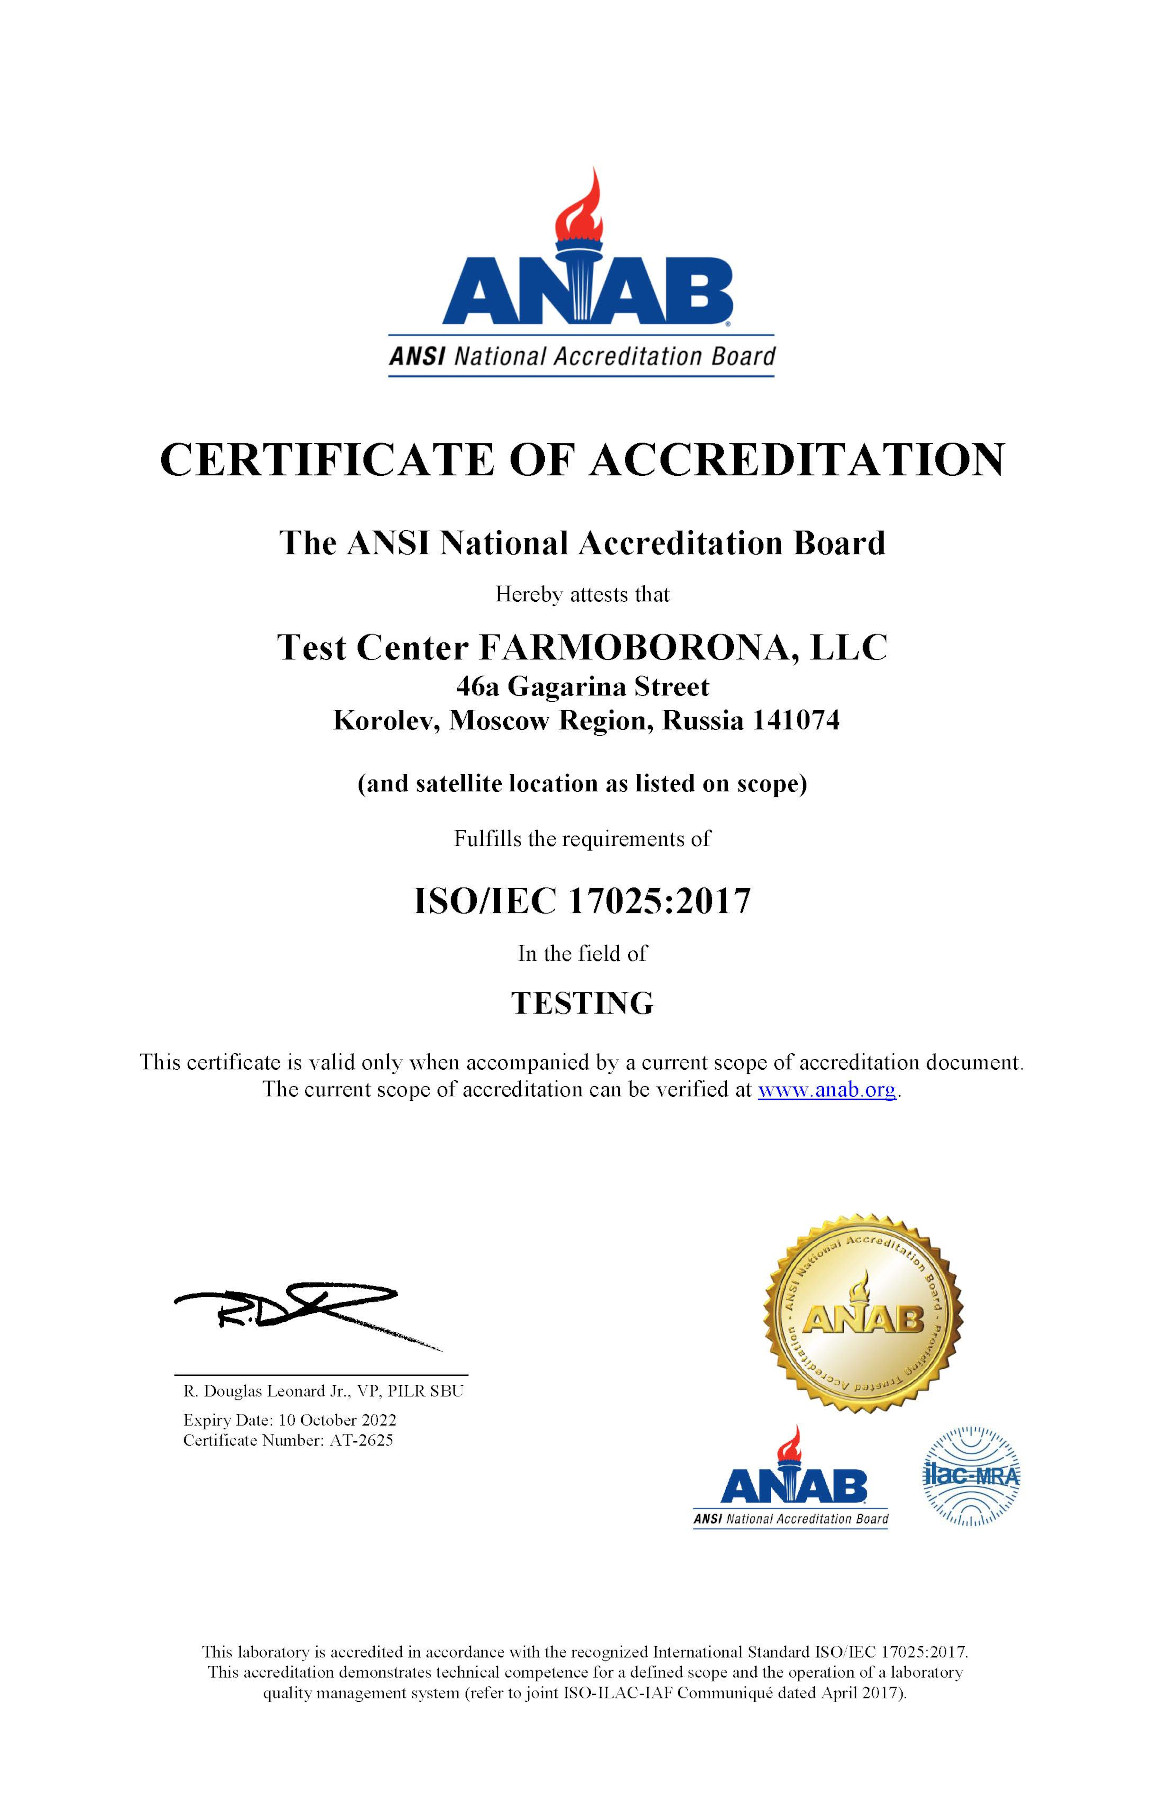 International accreditation for compliance with ISO / IEC 17025: 2017